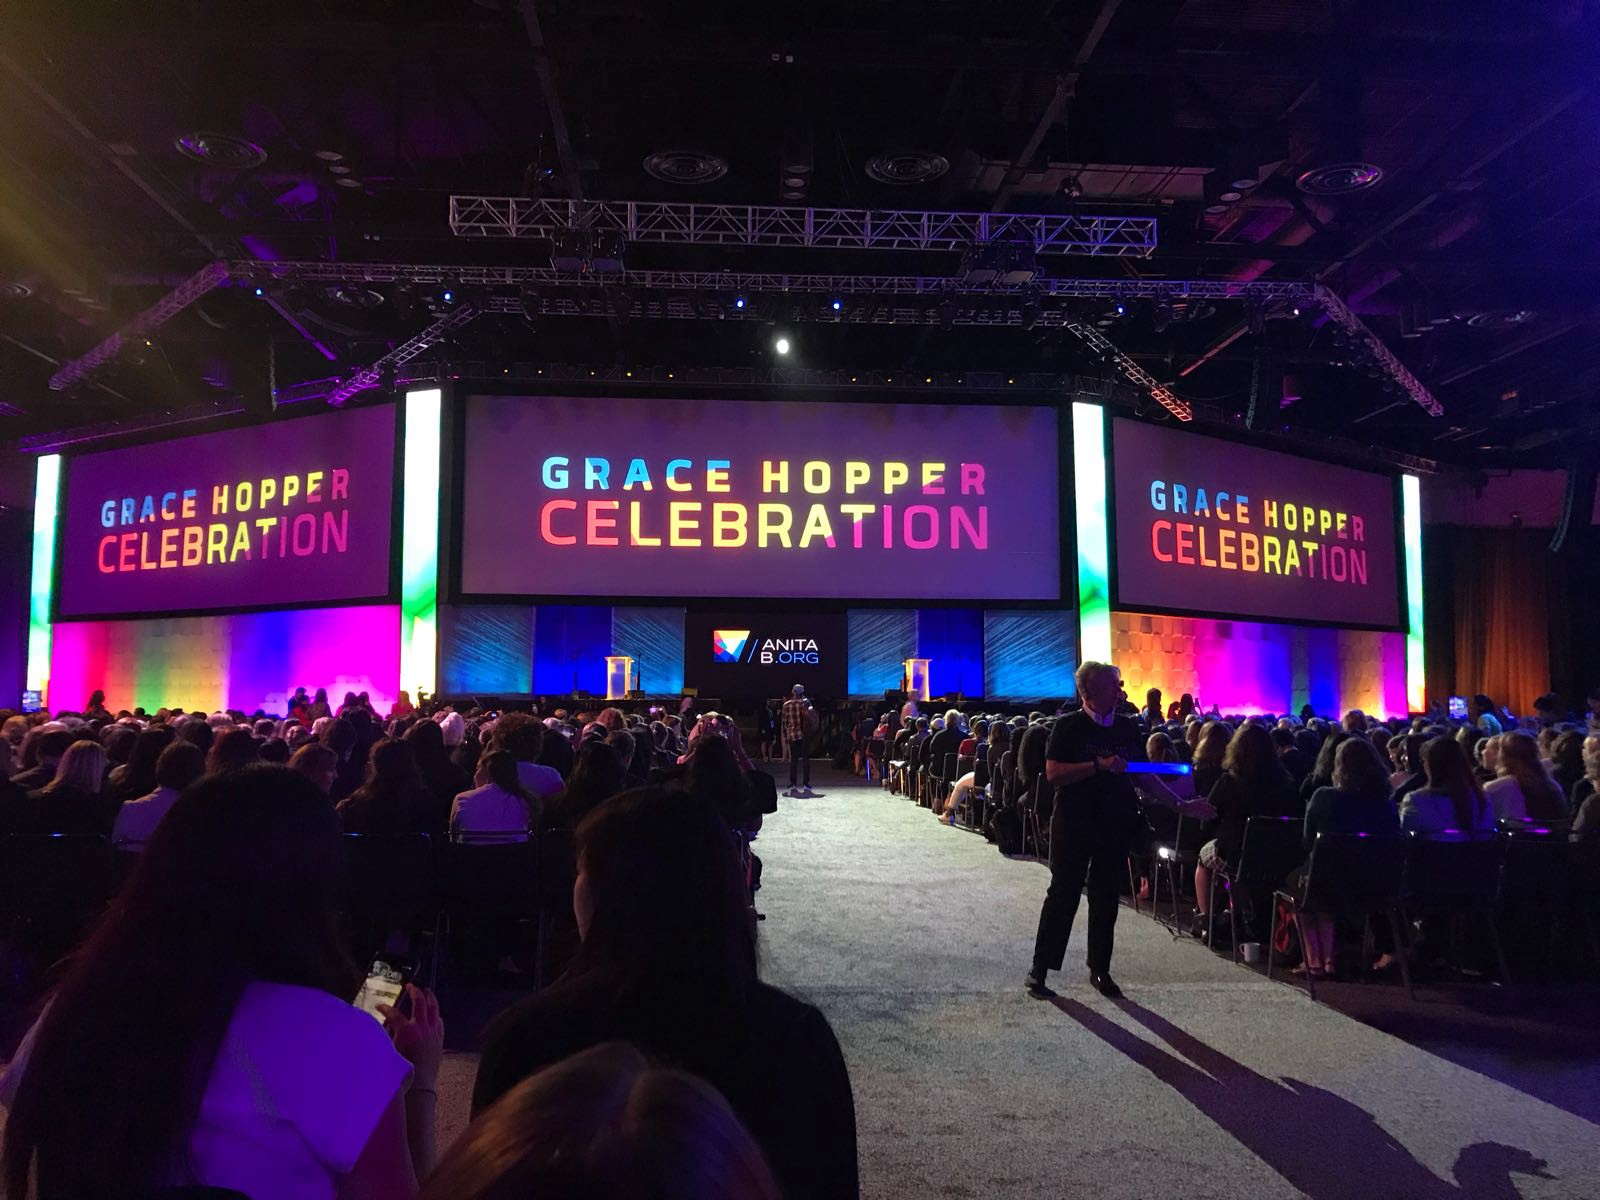 grace hopper celebration day 1 orlando fl